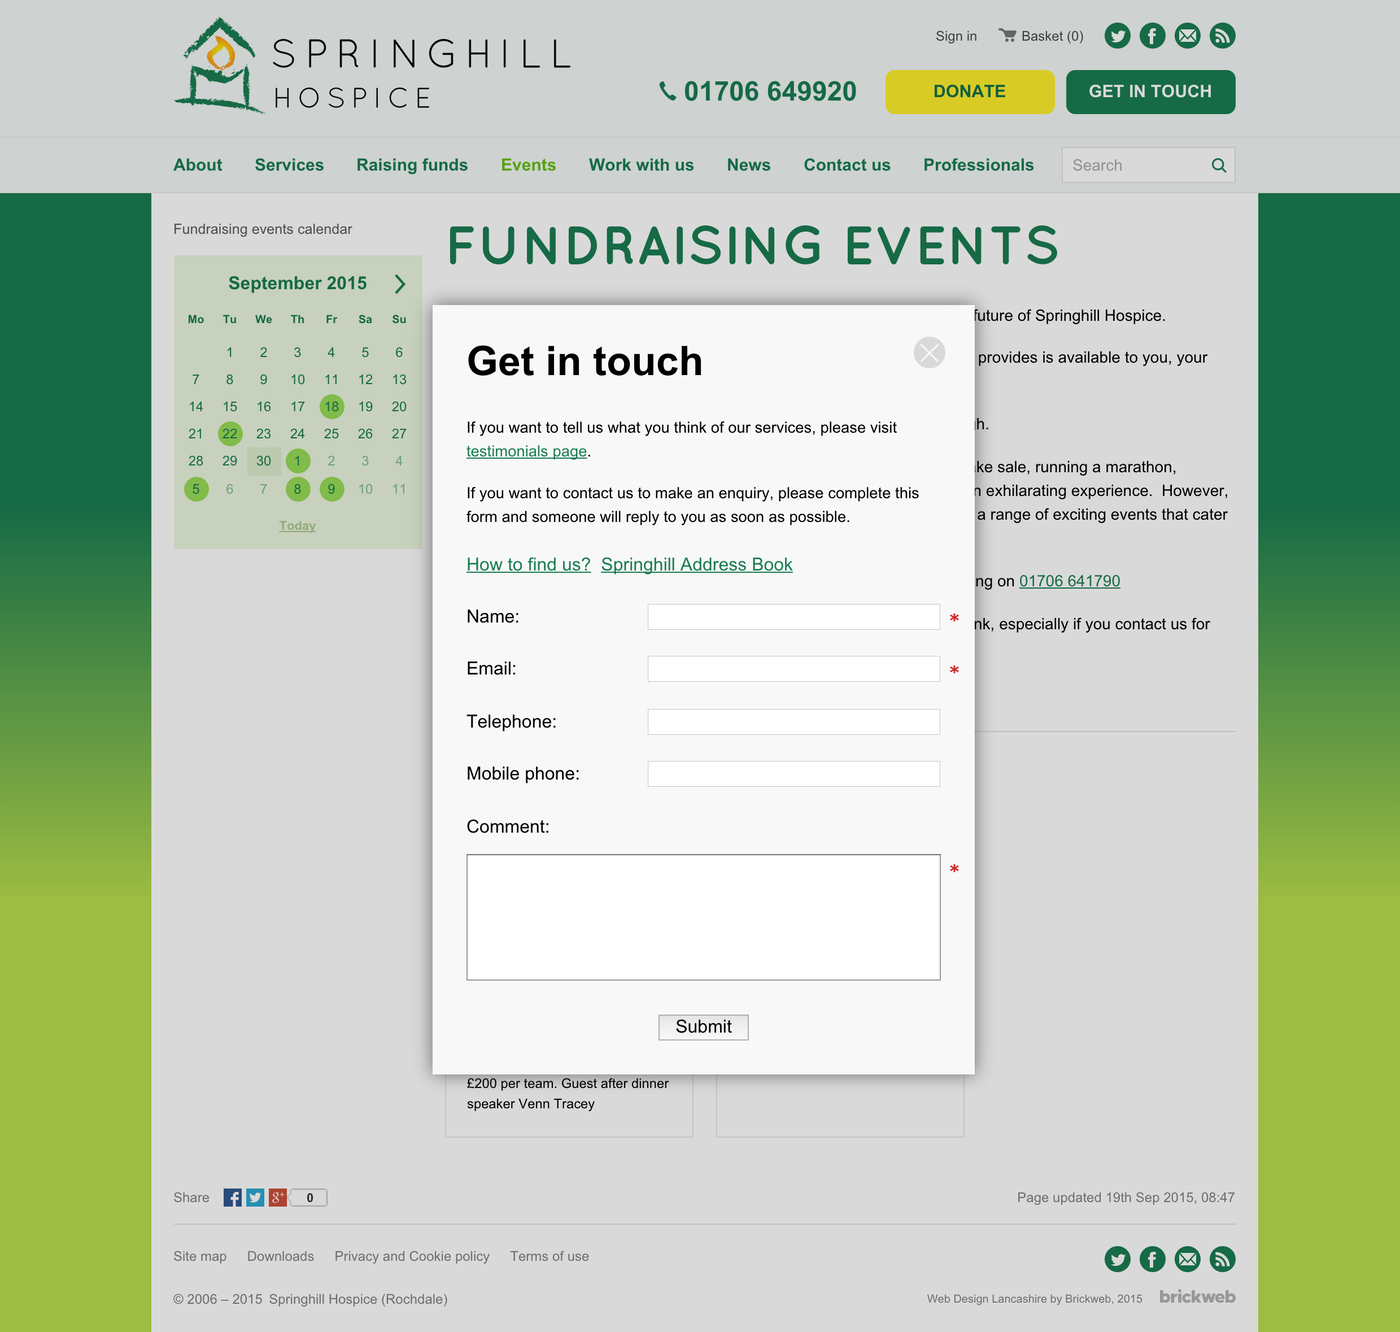 Springhill Hospice Get in touch